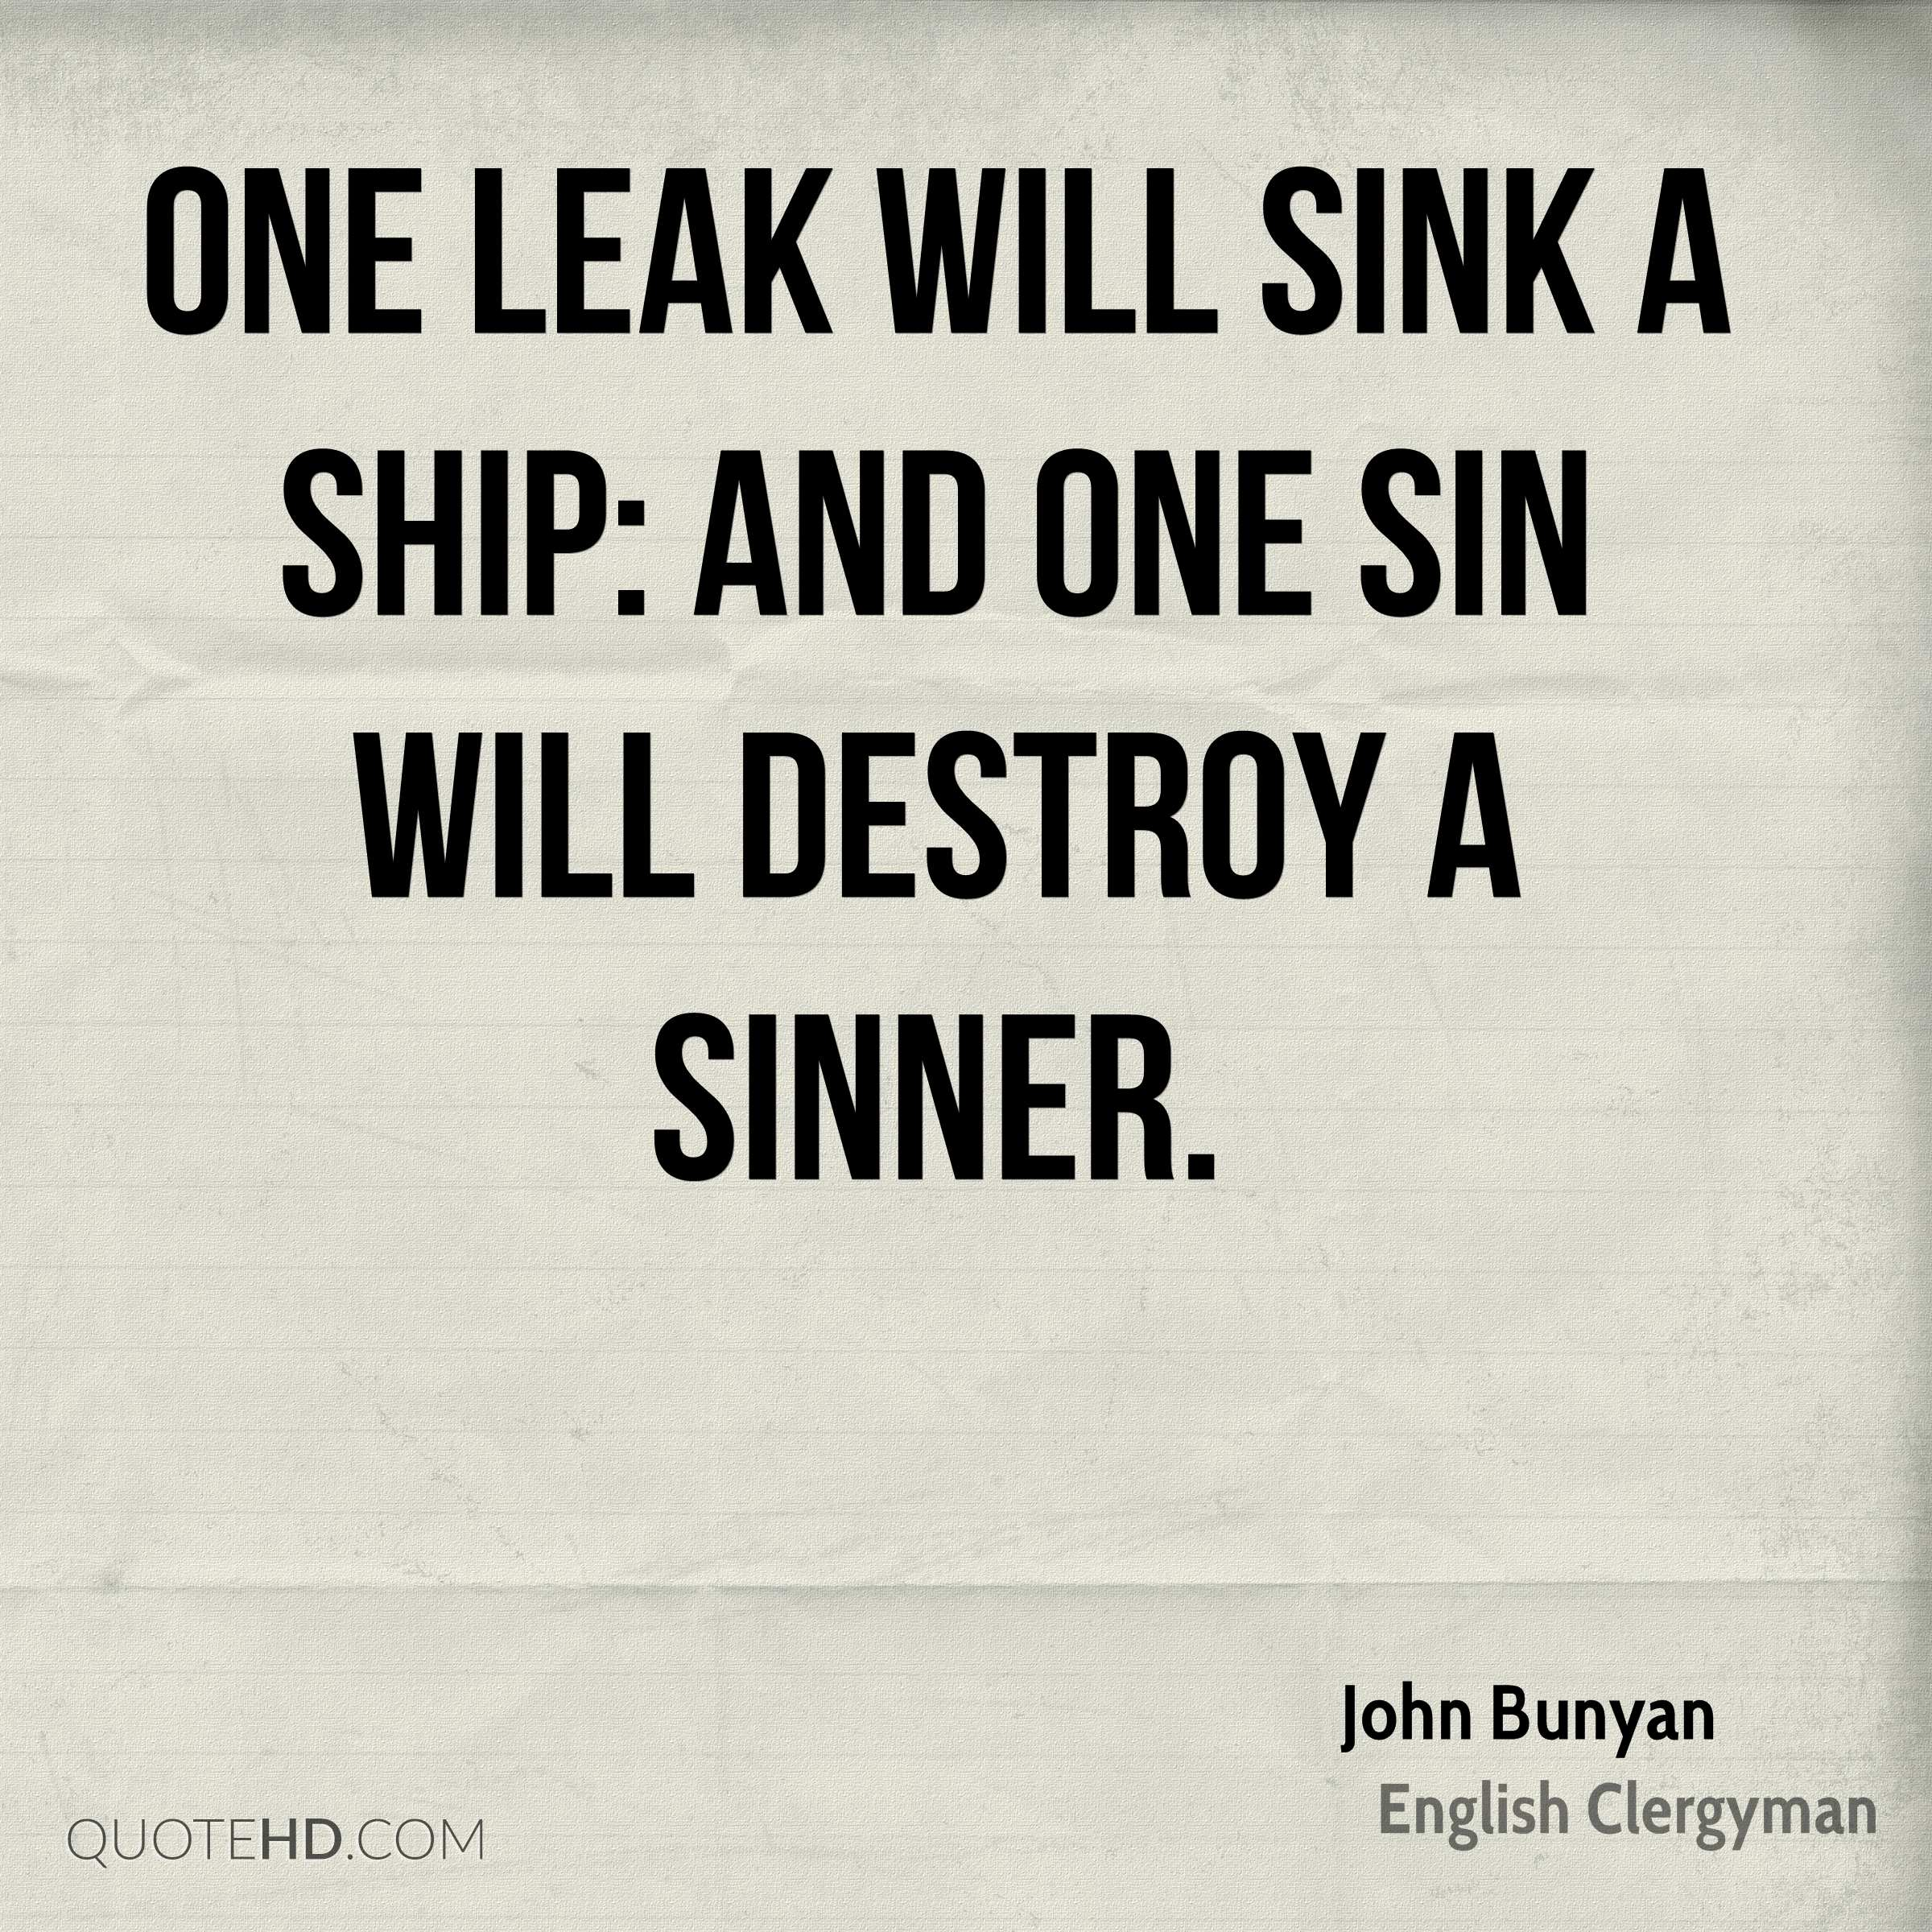 One leak will sink a ship: and one sin will destroy a sinner.